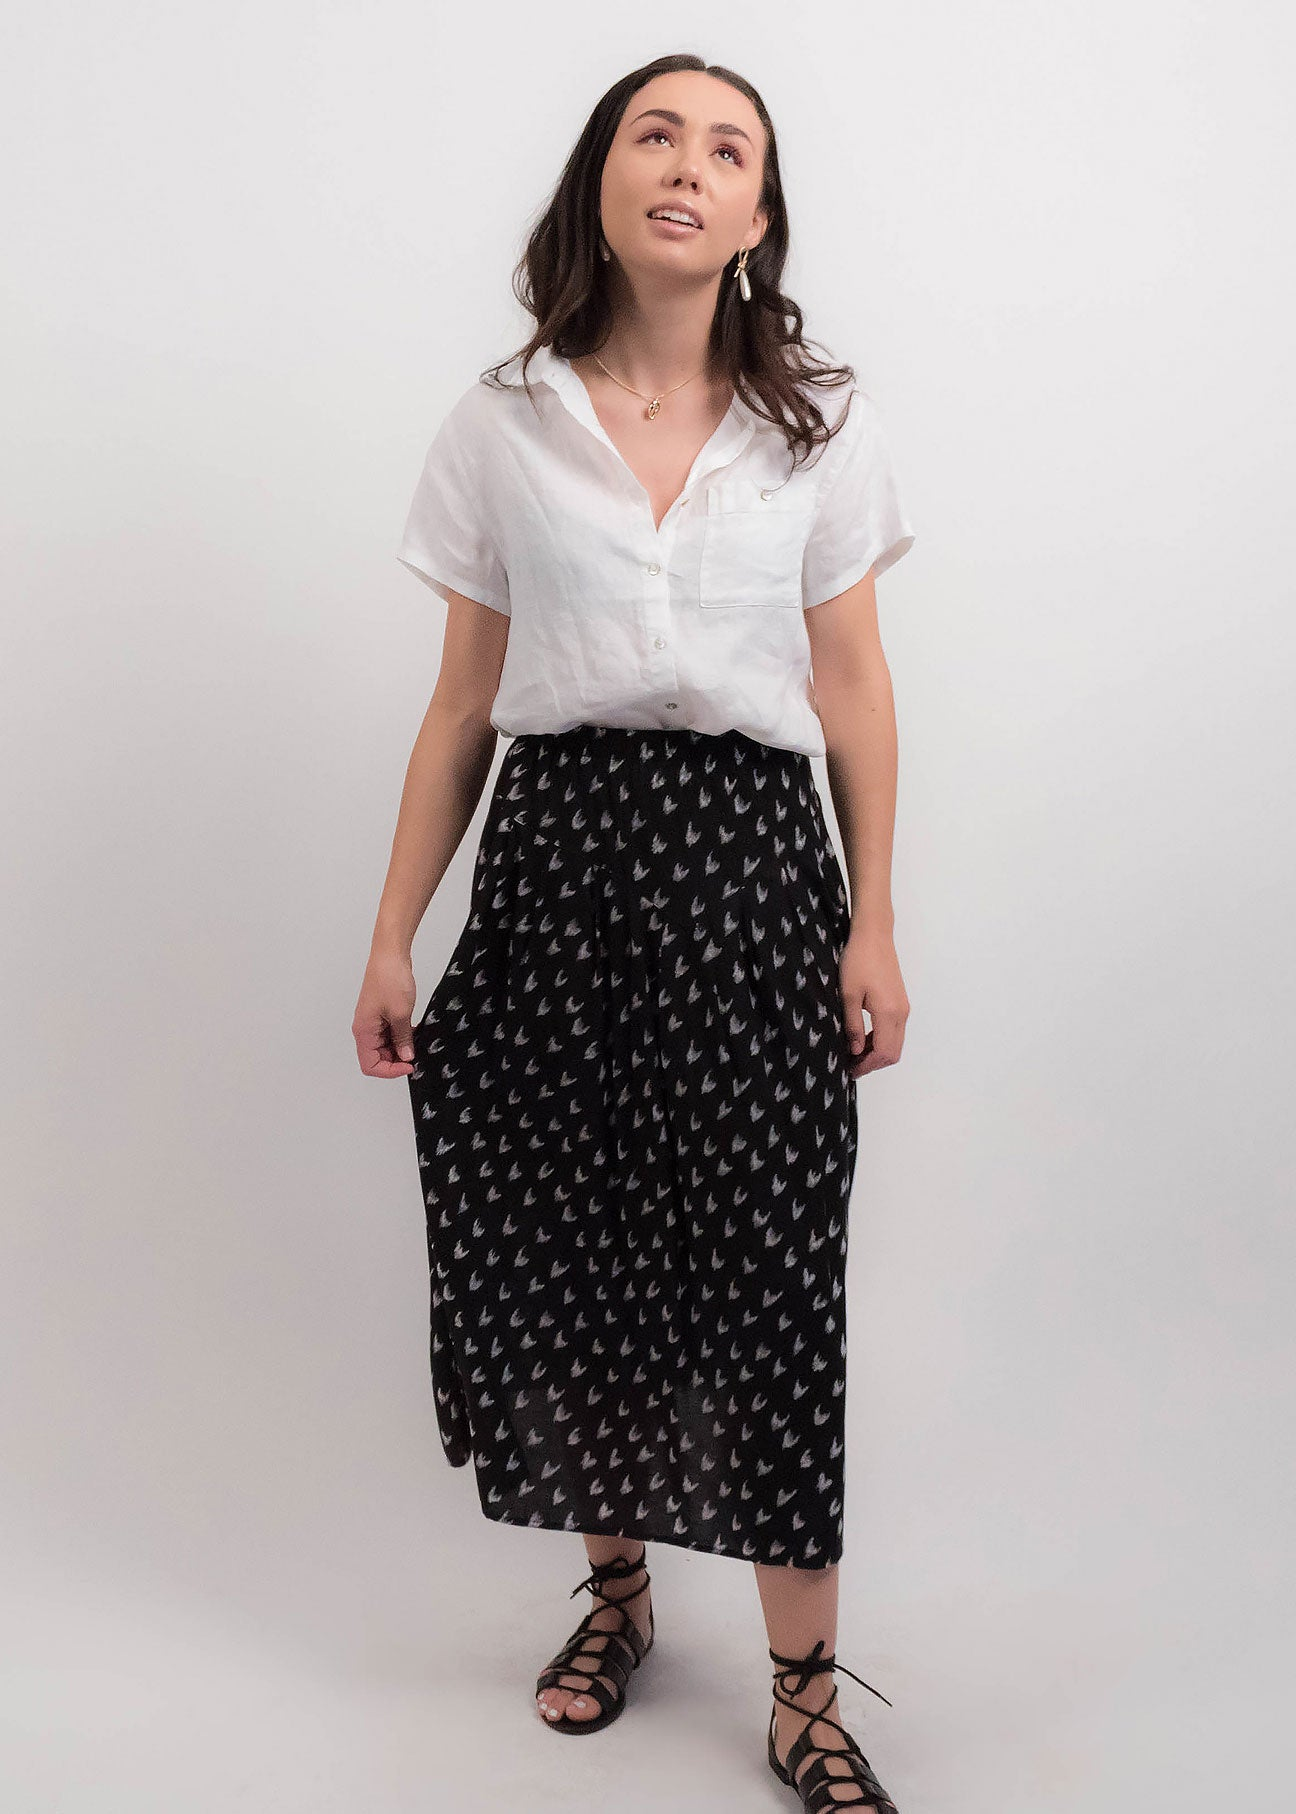 80s Abstract Southwestern Skirt